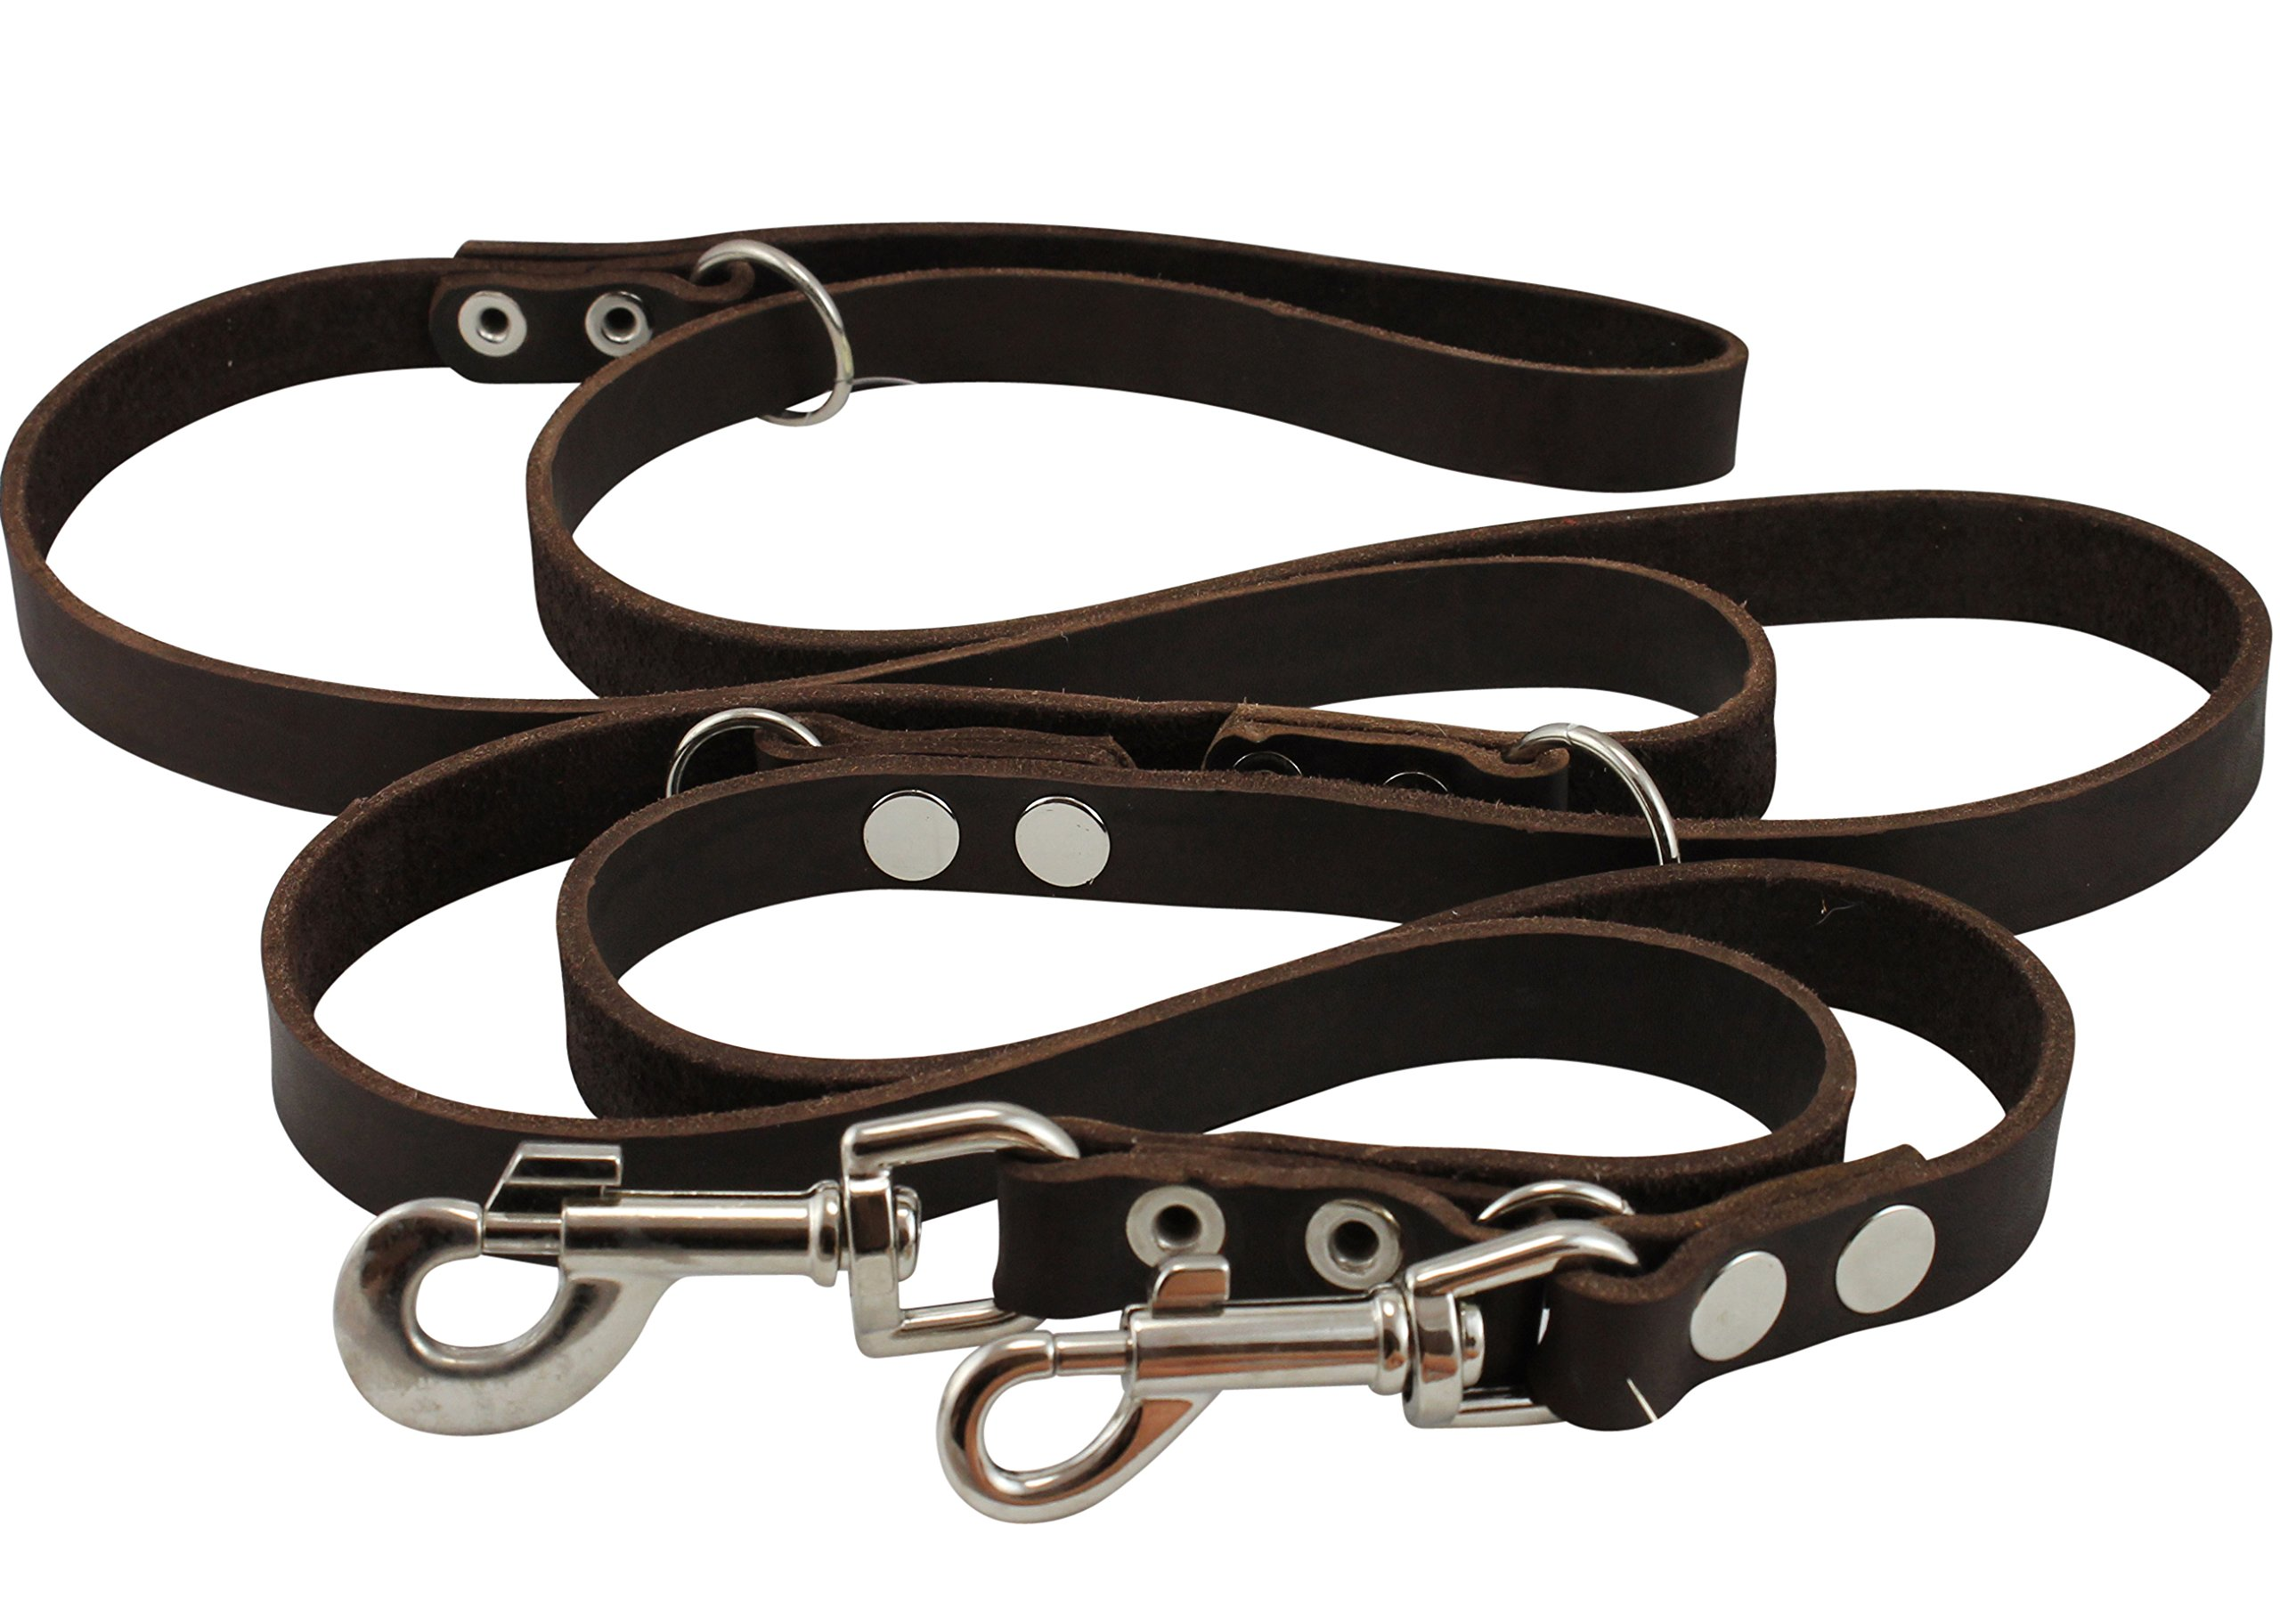 Dogs My Love Brown 6 Way European Multifunctional Leather Dog Leash, Adjustable Schutzhund Lead 49''-94'' Long, 3/4'' Wide (18 mm) Large